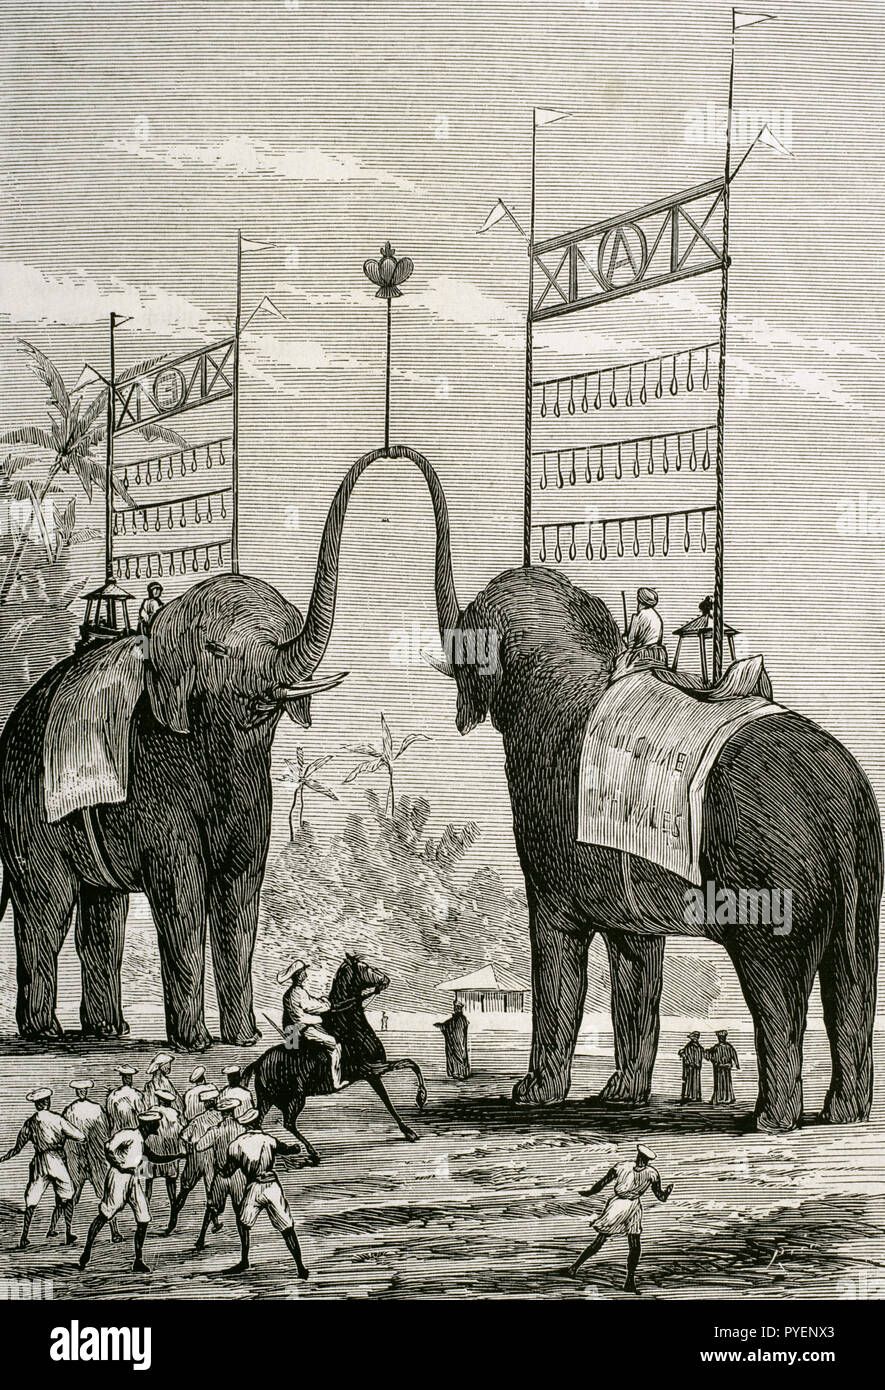 British colonialism. Journey of the Prince of Wales (1841-1910) to India. Later he would become the King Edward VII of the United Kingdom. Triumphal Arch in honour to the Prince of Wales in the city of Colombo, Ceylon Colony (currently Sri Lanka). Engraving by Rico. La Ilustracion Española y Americana, January 22, 1876. - Stock Image